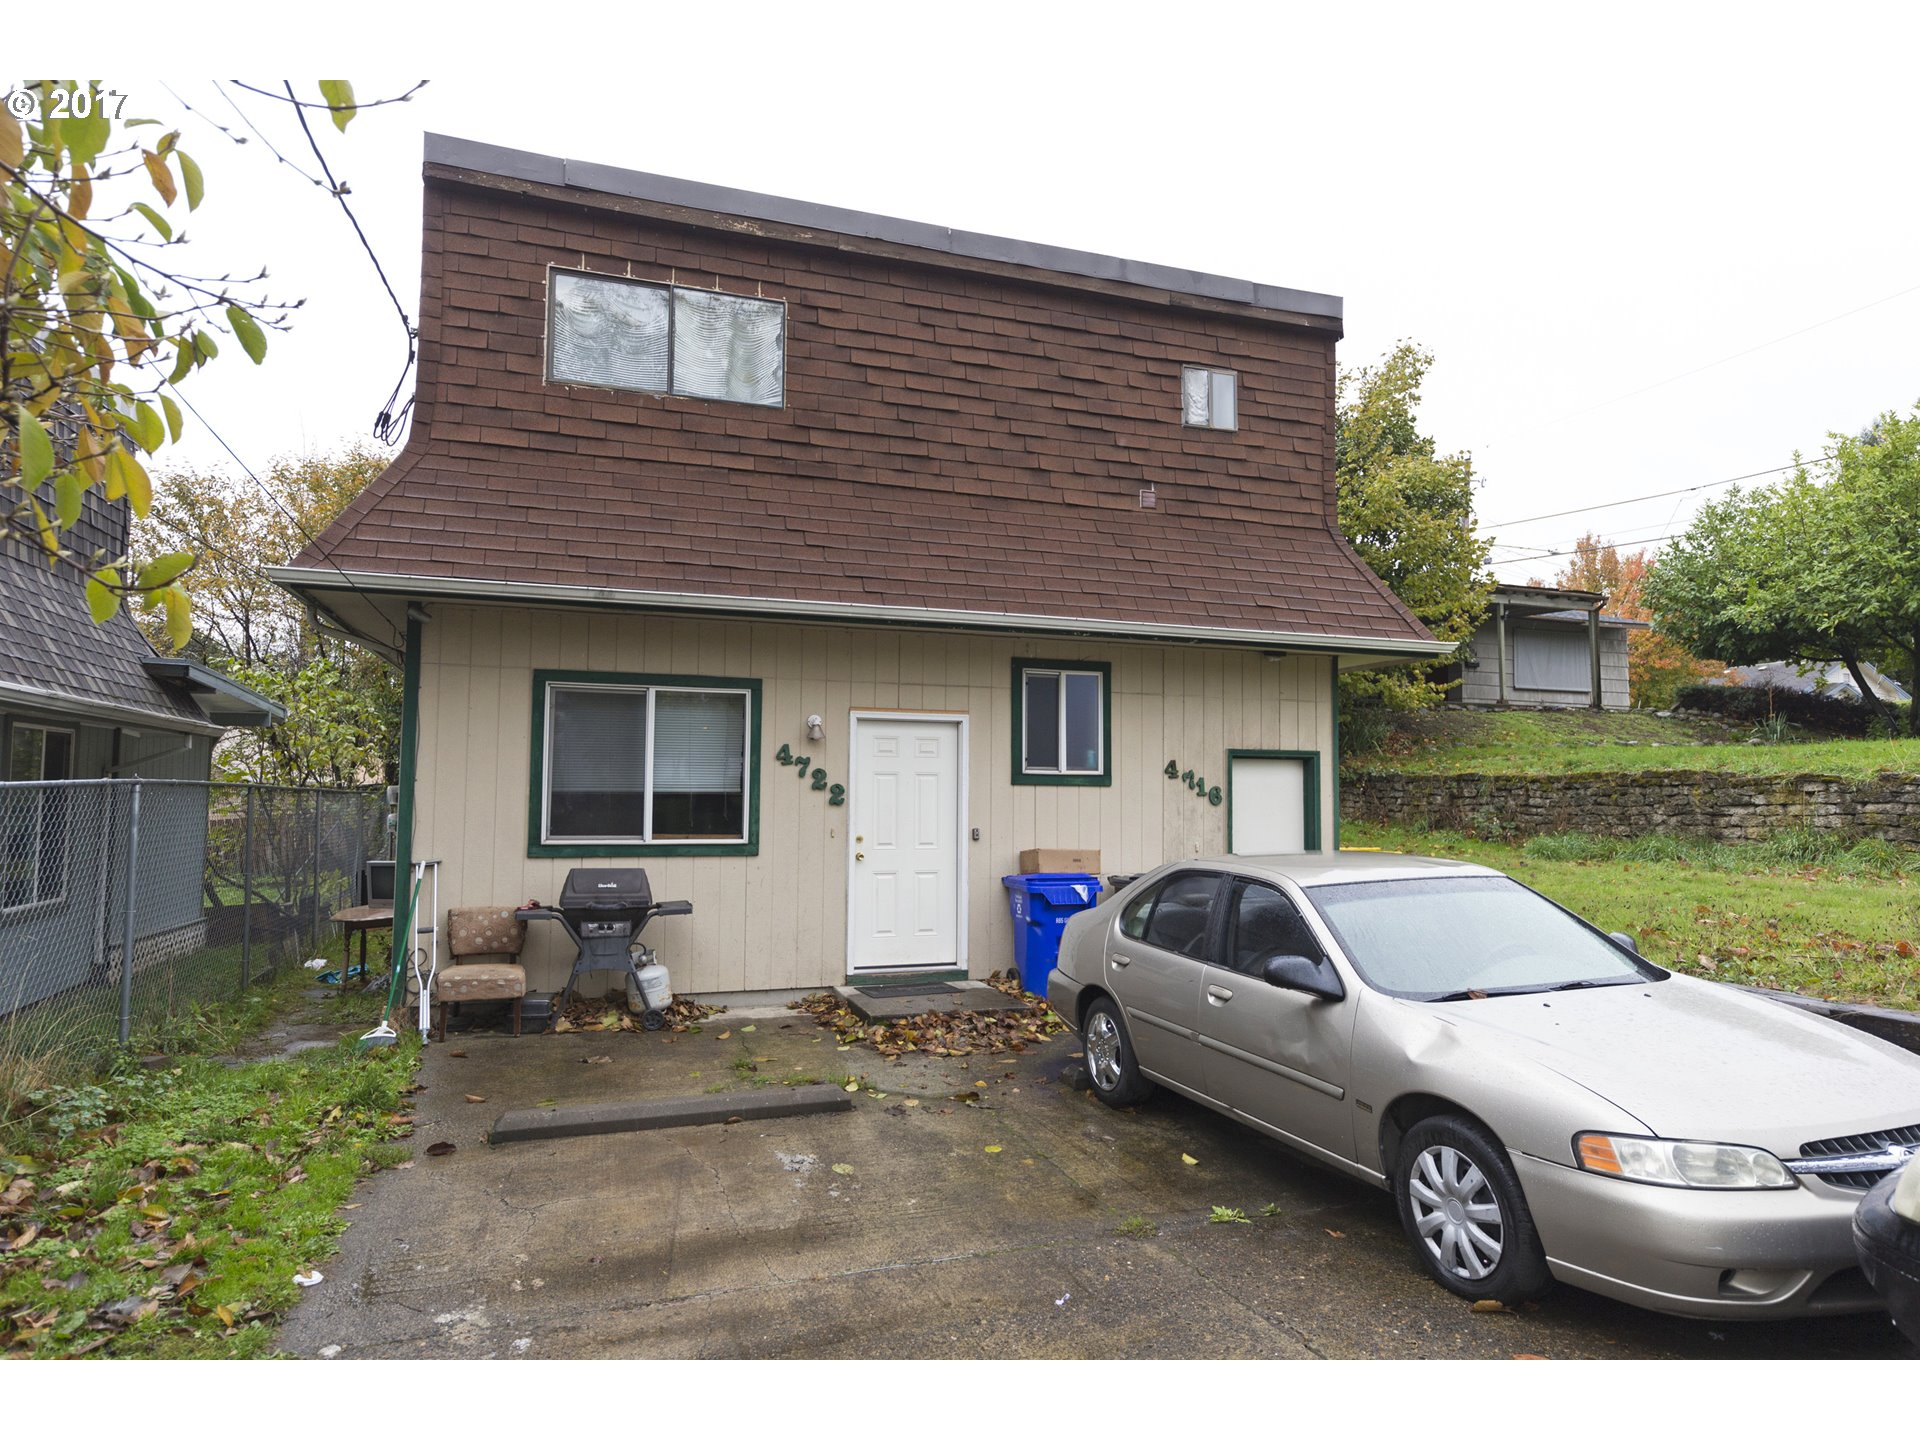 Beautiful duplex with a possible income on the other! An opportunity you cannot surpass! Situated in the heart of Portland, bringing you closer to everything you need! No HOA, on a bus line and easy access to max and airport. Don't miss this one!